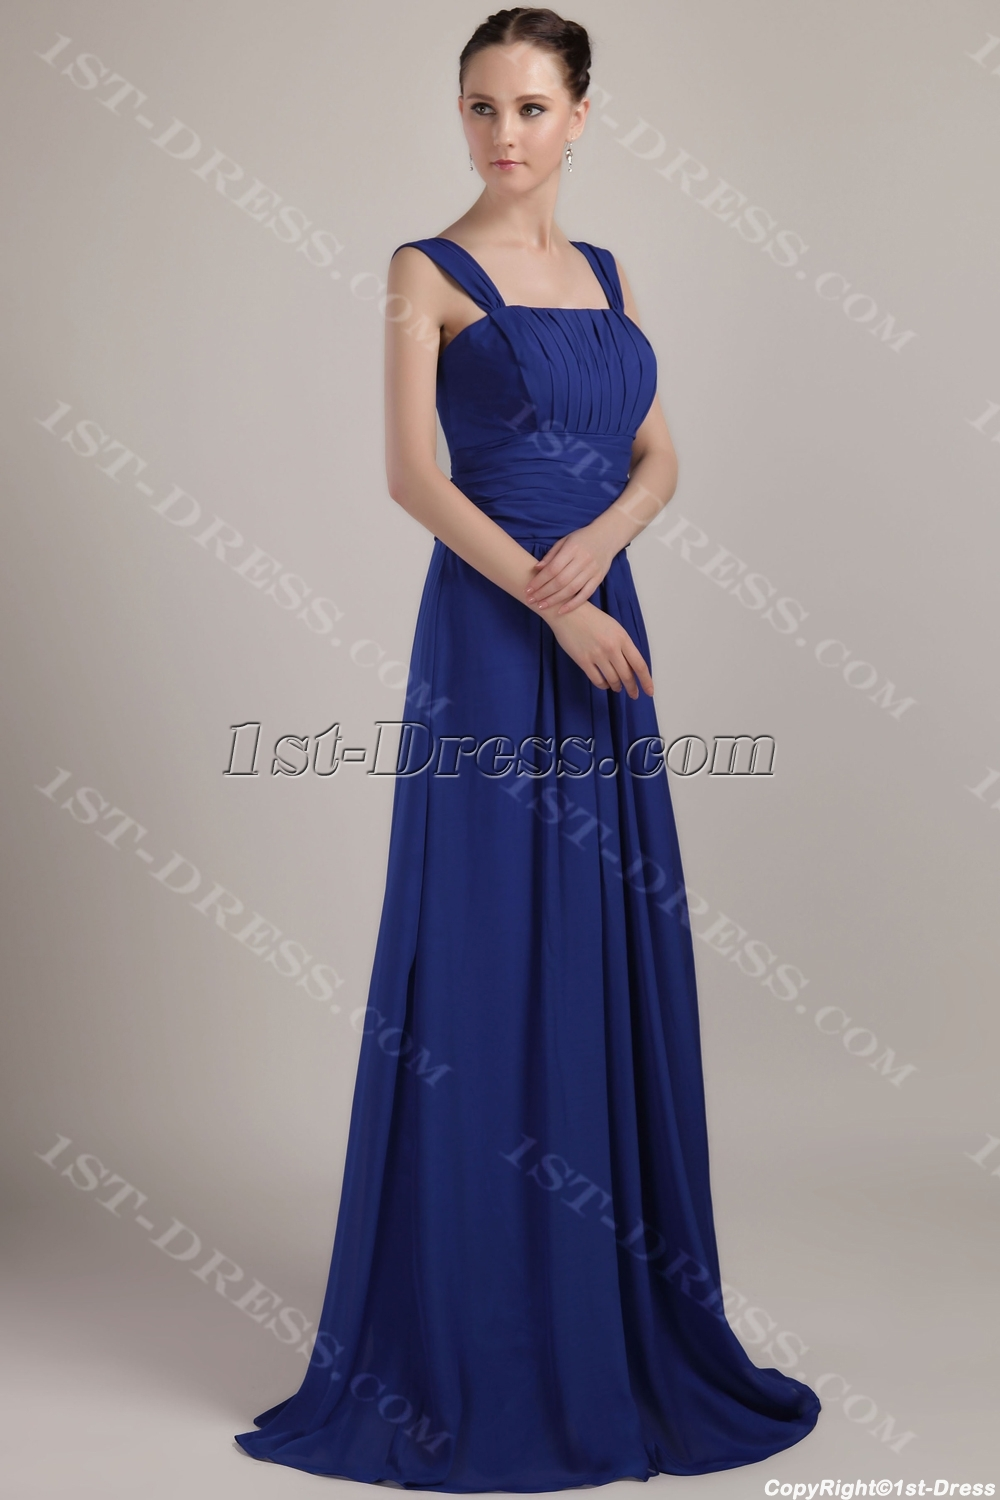 images/201304/big/Royal-Blue-Formal-Prom-Dress-Long-2013-IMG_3473-1071-b-1-1366202291.jpg